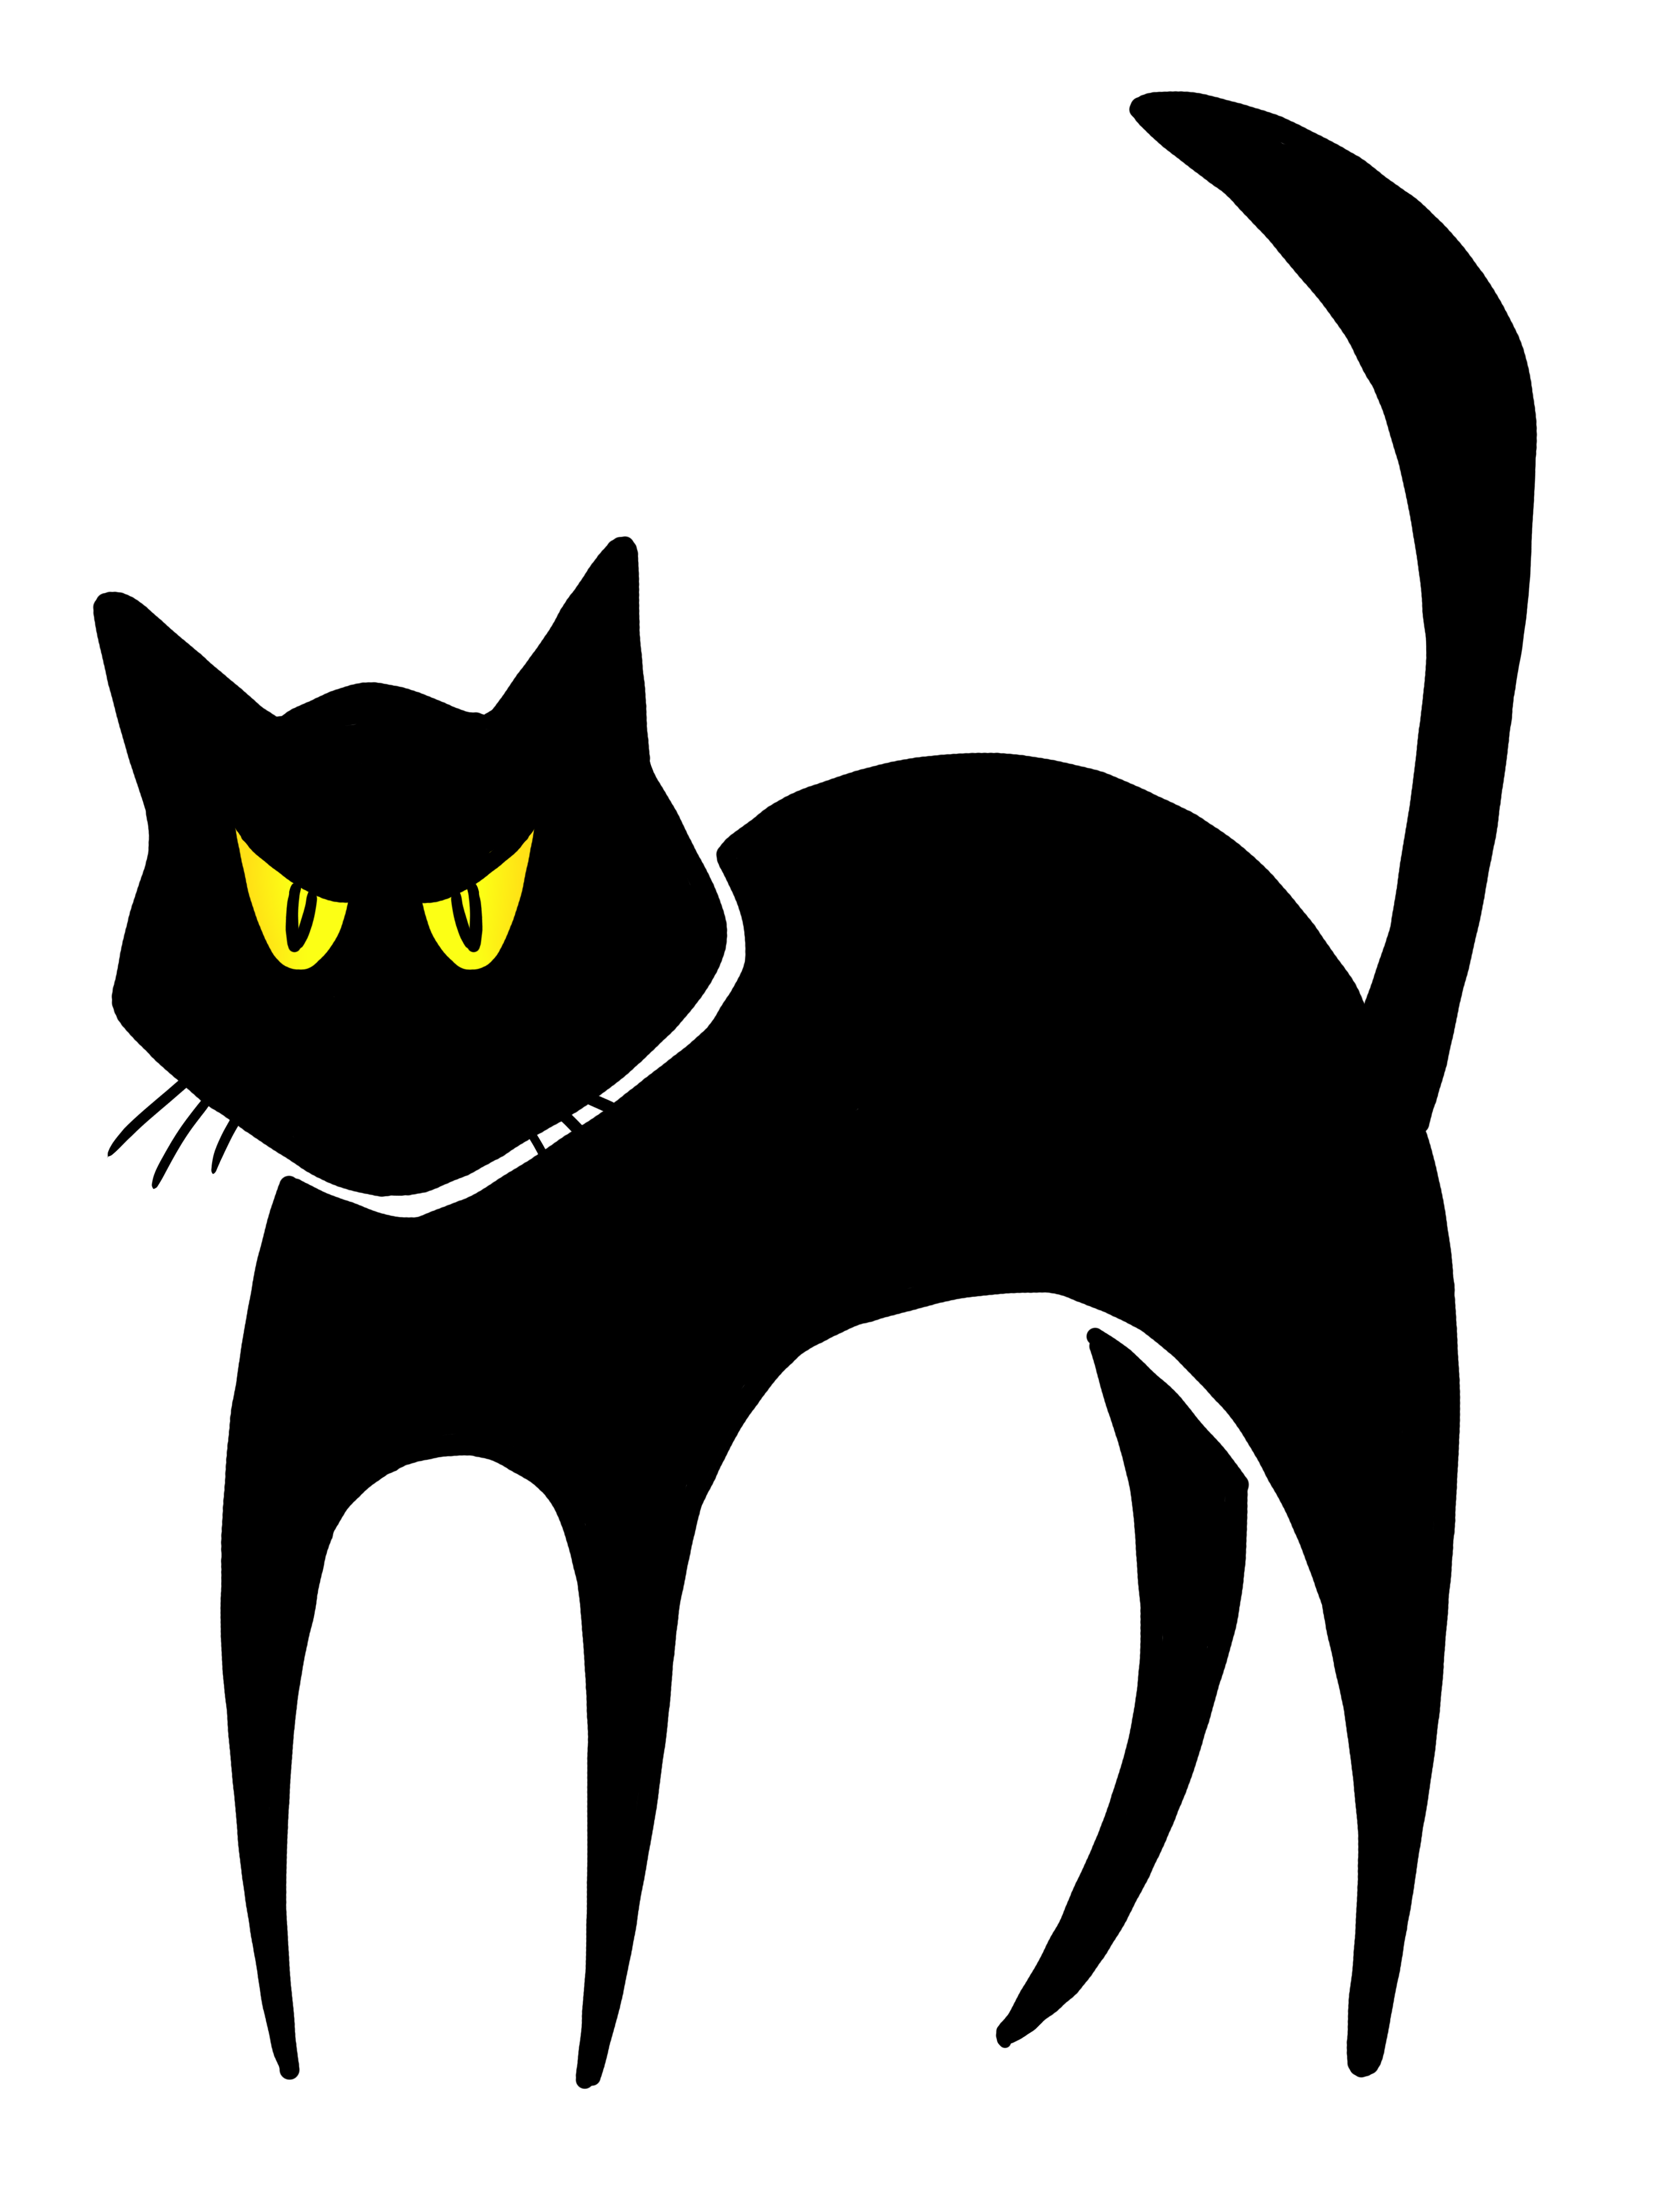 Scared cat clipart